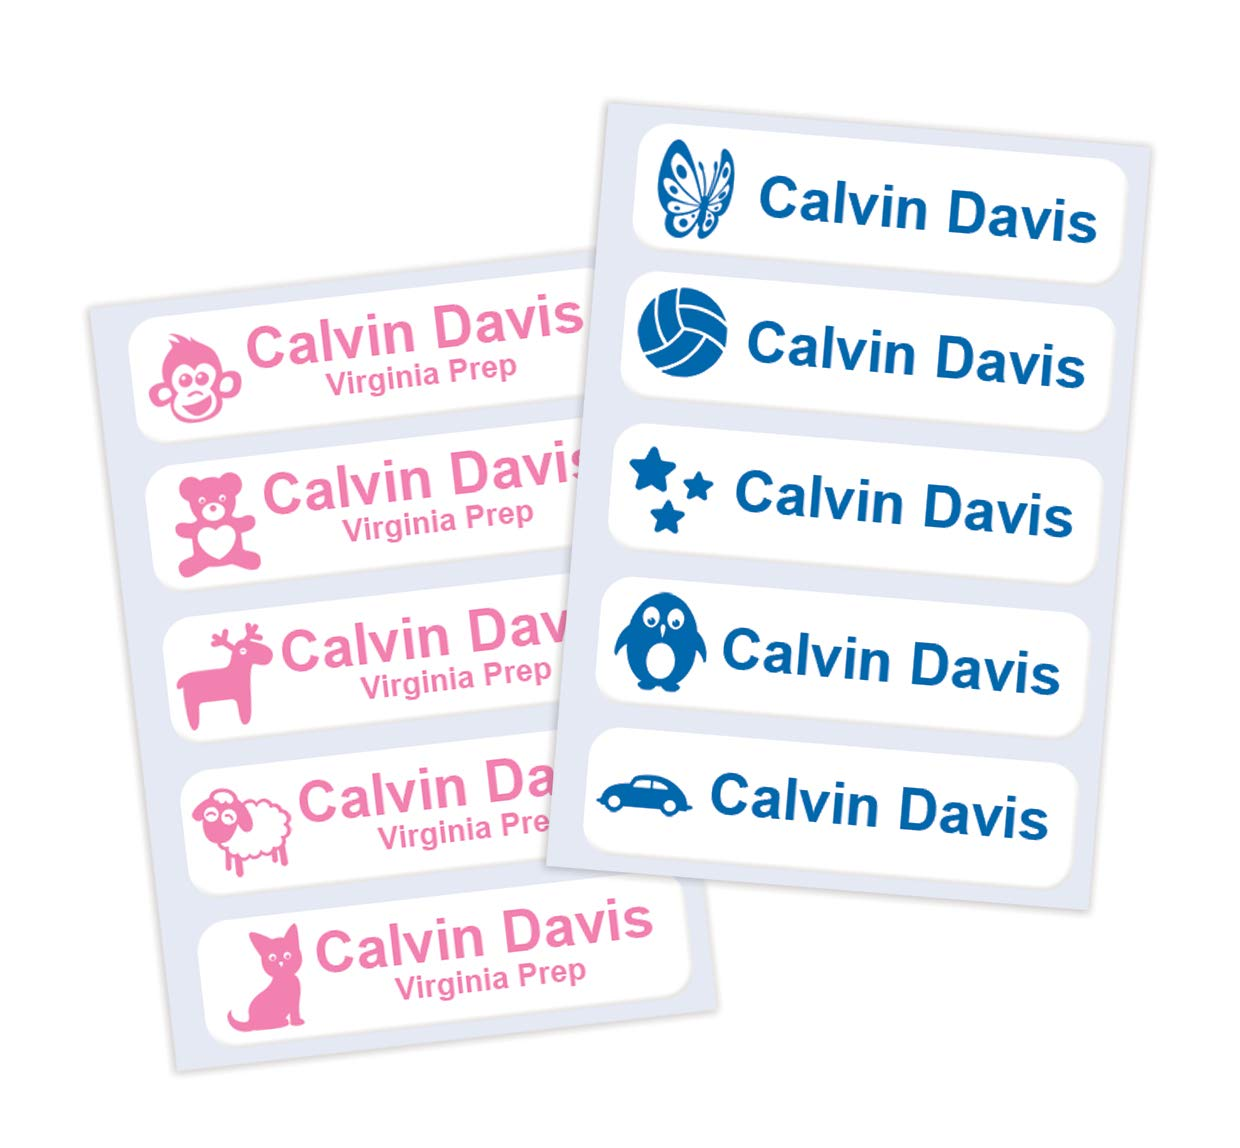 Iron on or Sew in Name Labels for School Items - Personalised with Name & Contact Info, Printed Tags for Uniforms Clothing Items, No More Lost Property, Save Money & Time (25)